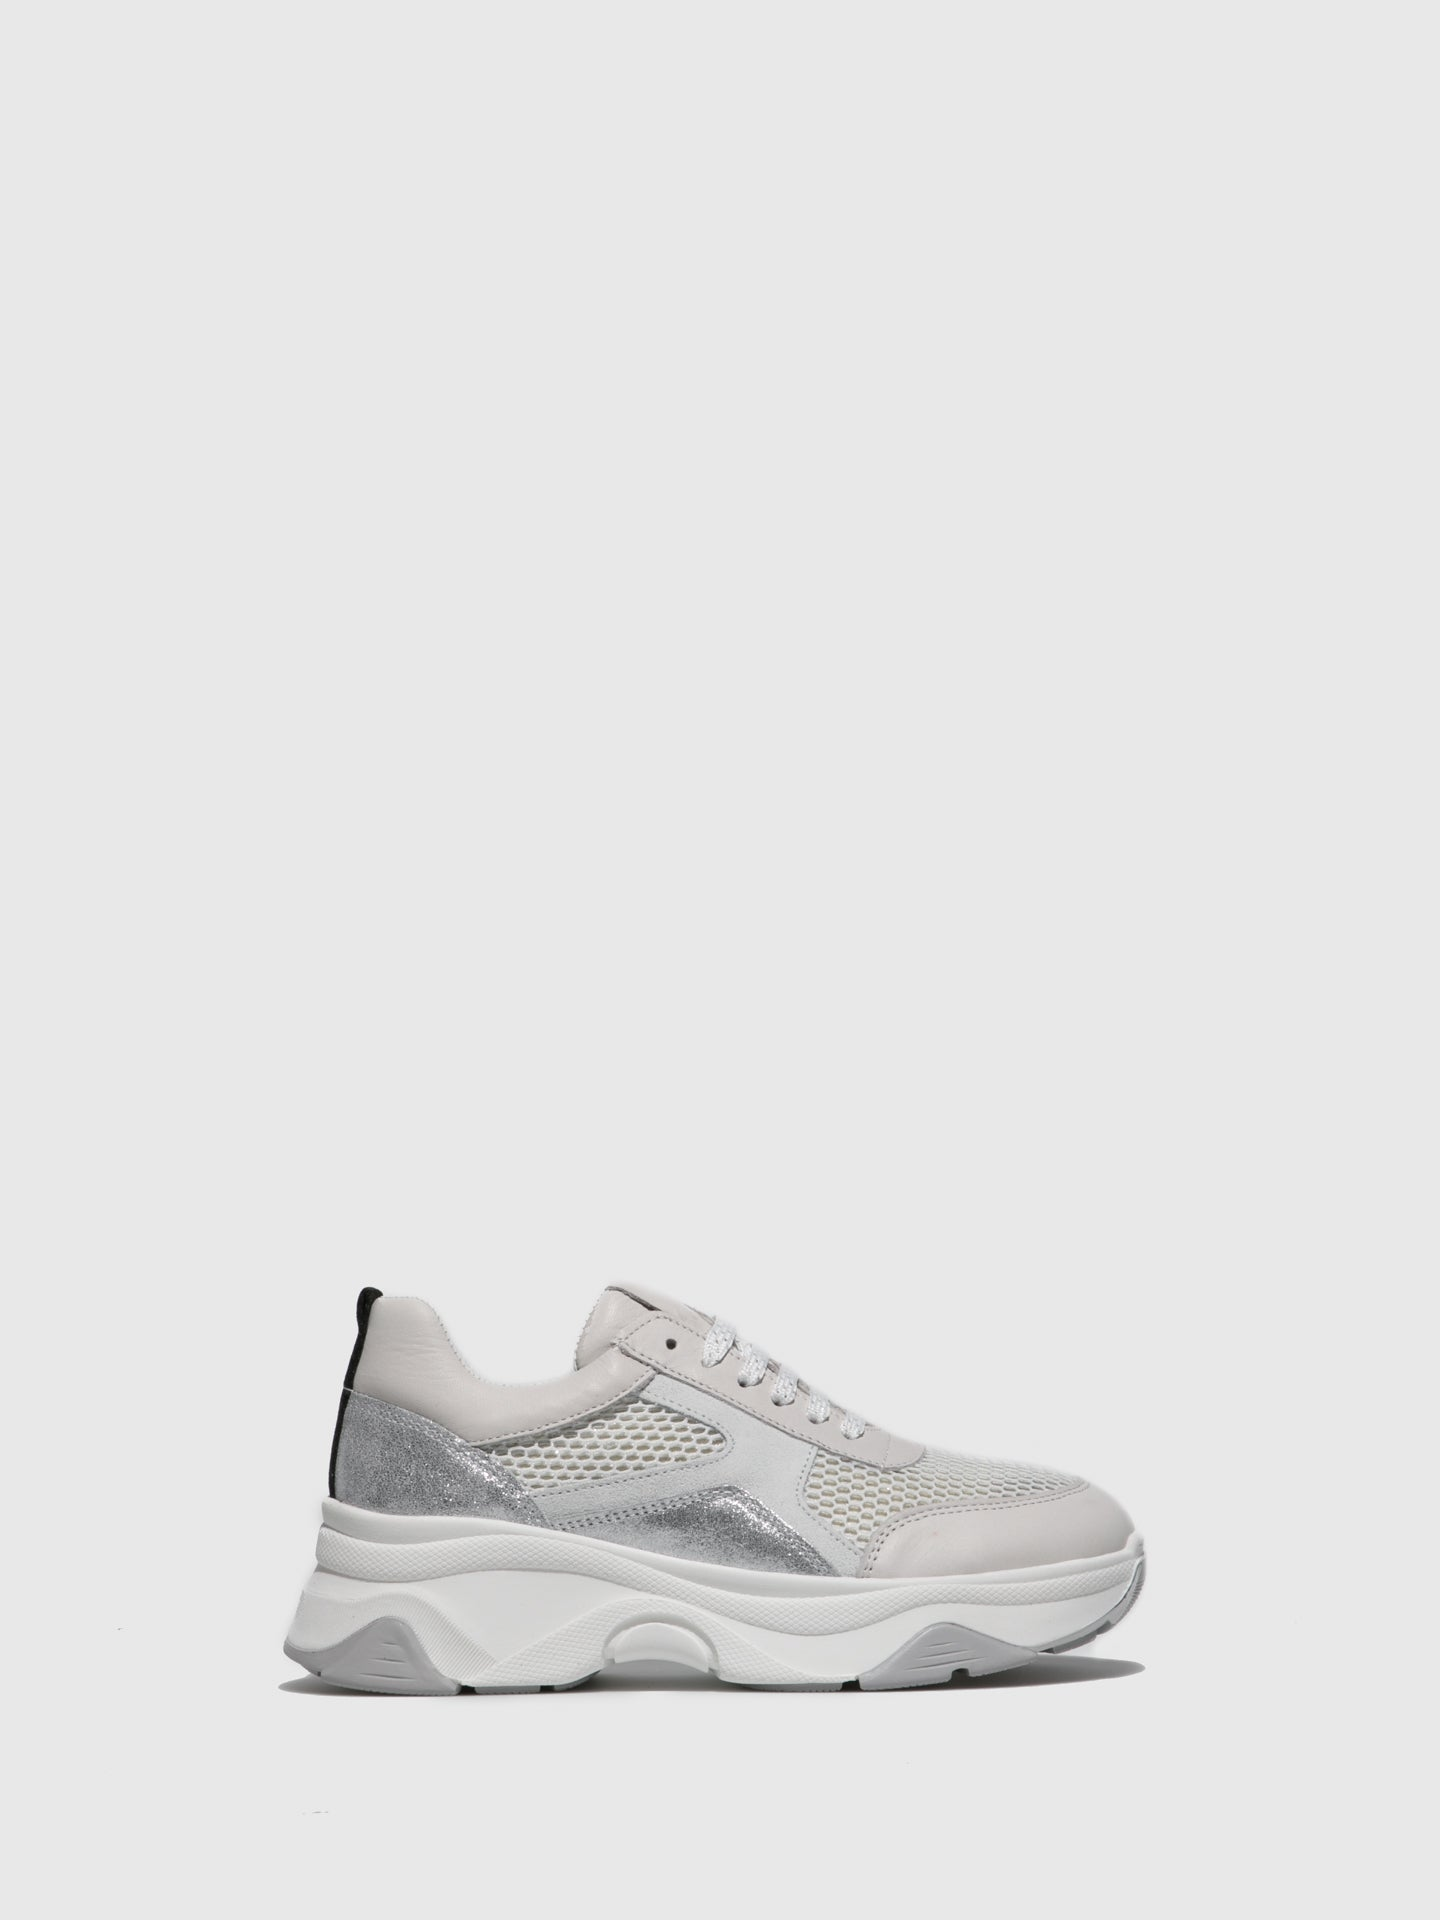 Fungi Silver White Wedge Trainers